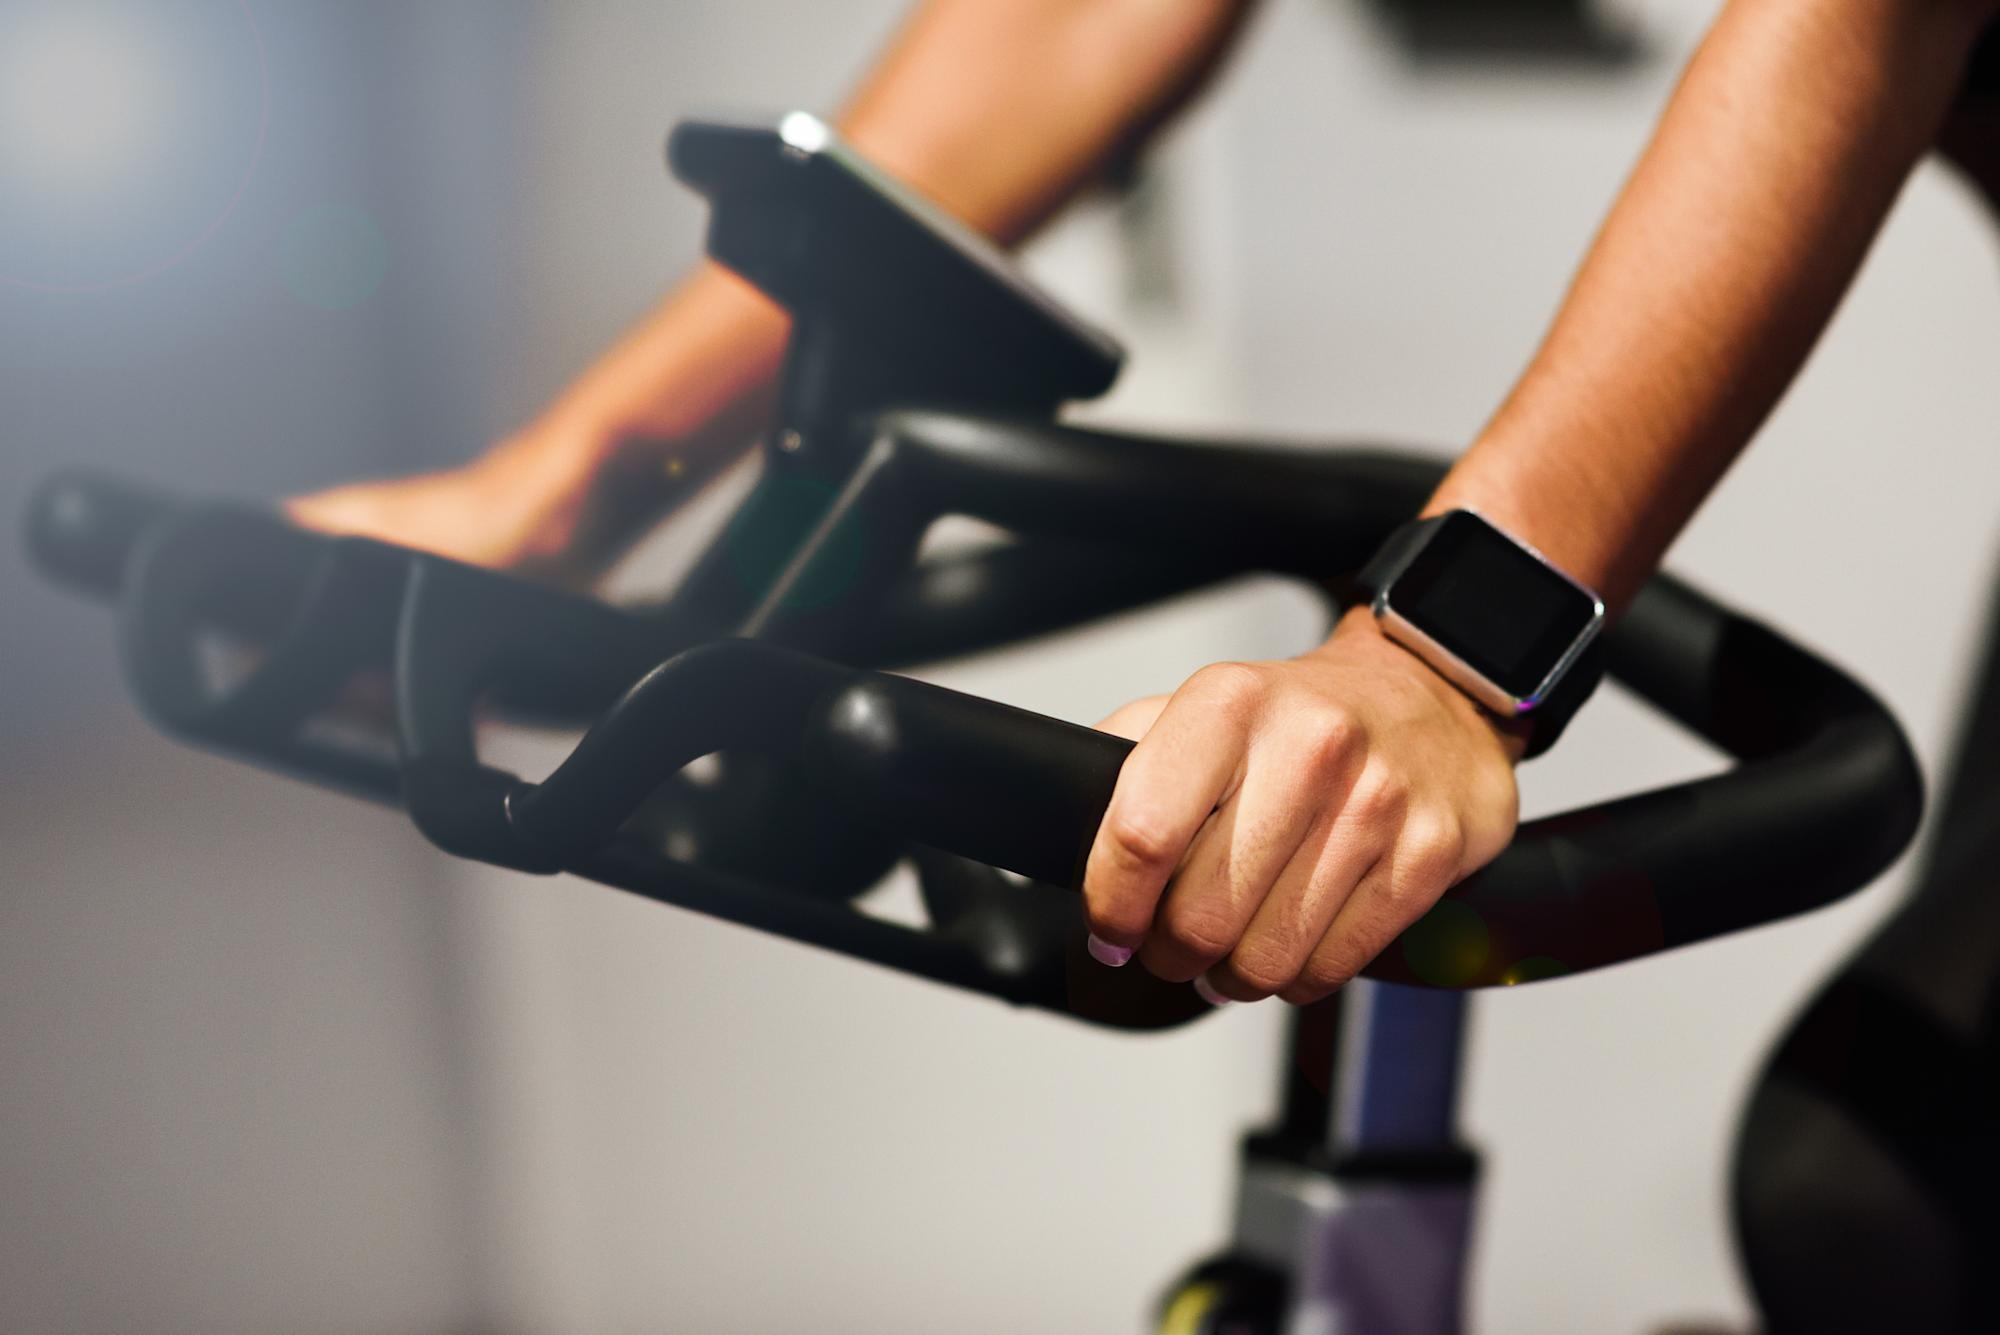 9 stationary bikes that have amazing reviews — and cost way less than a Peloton